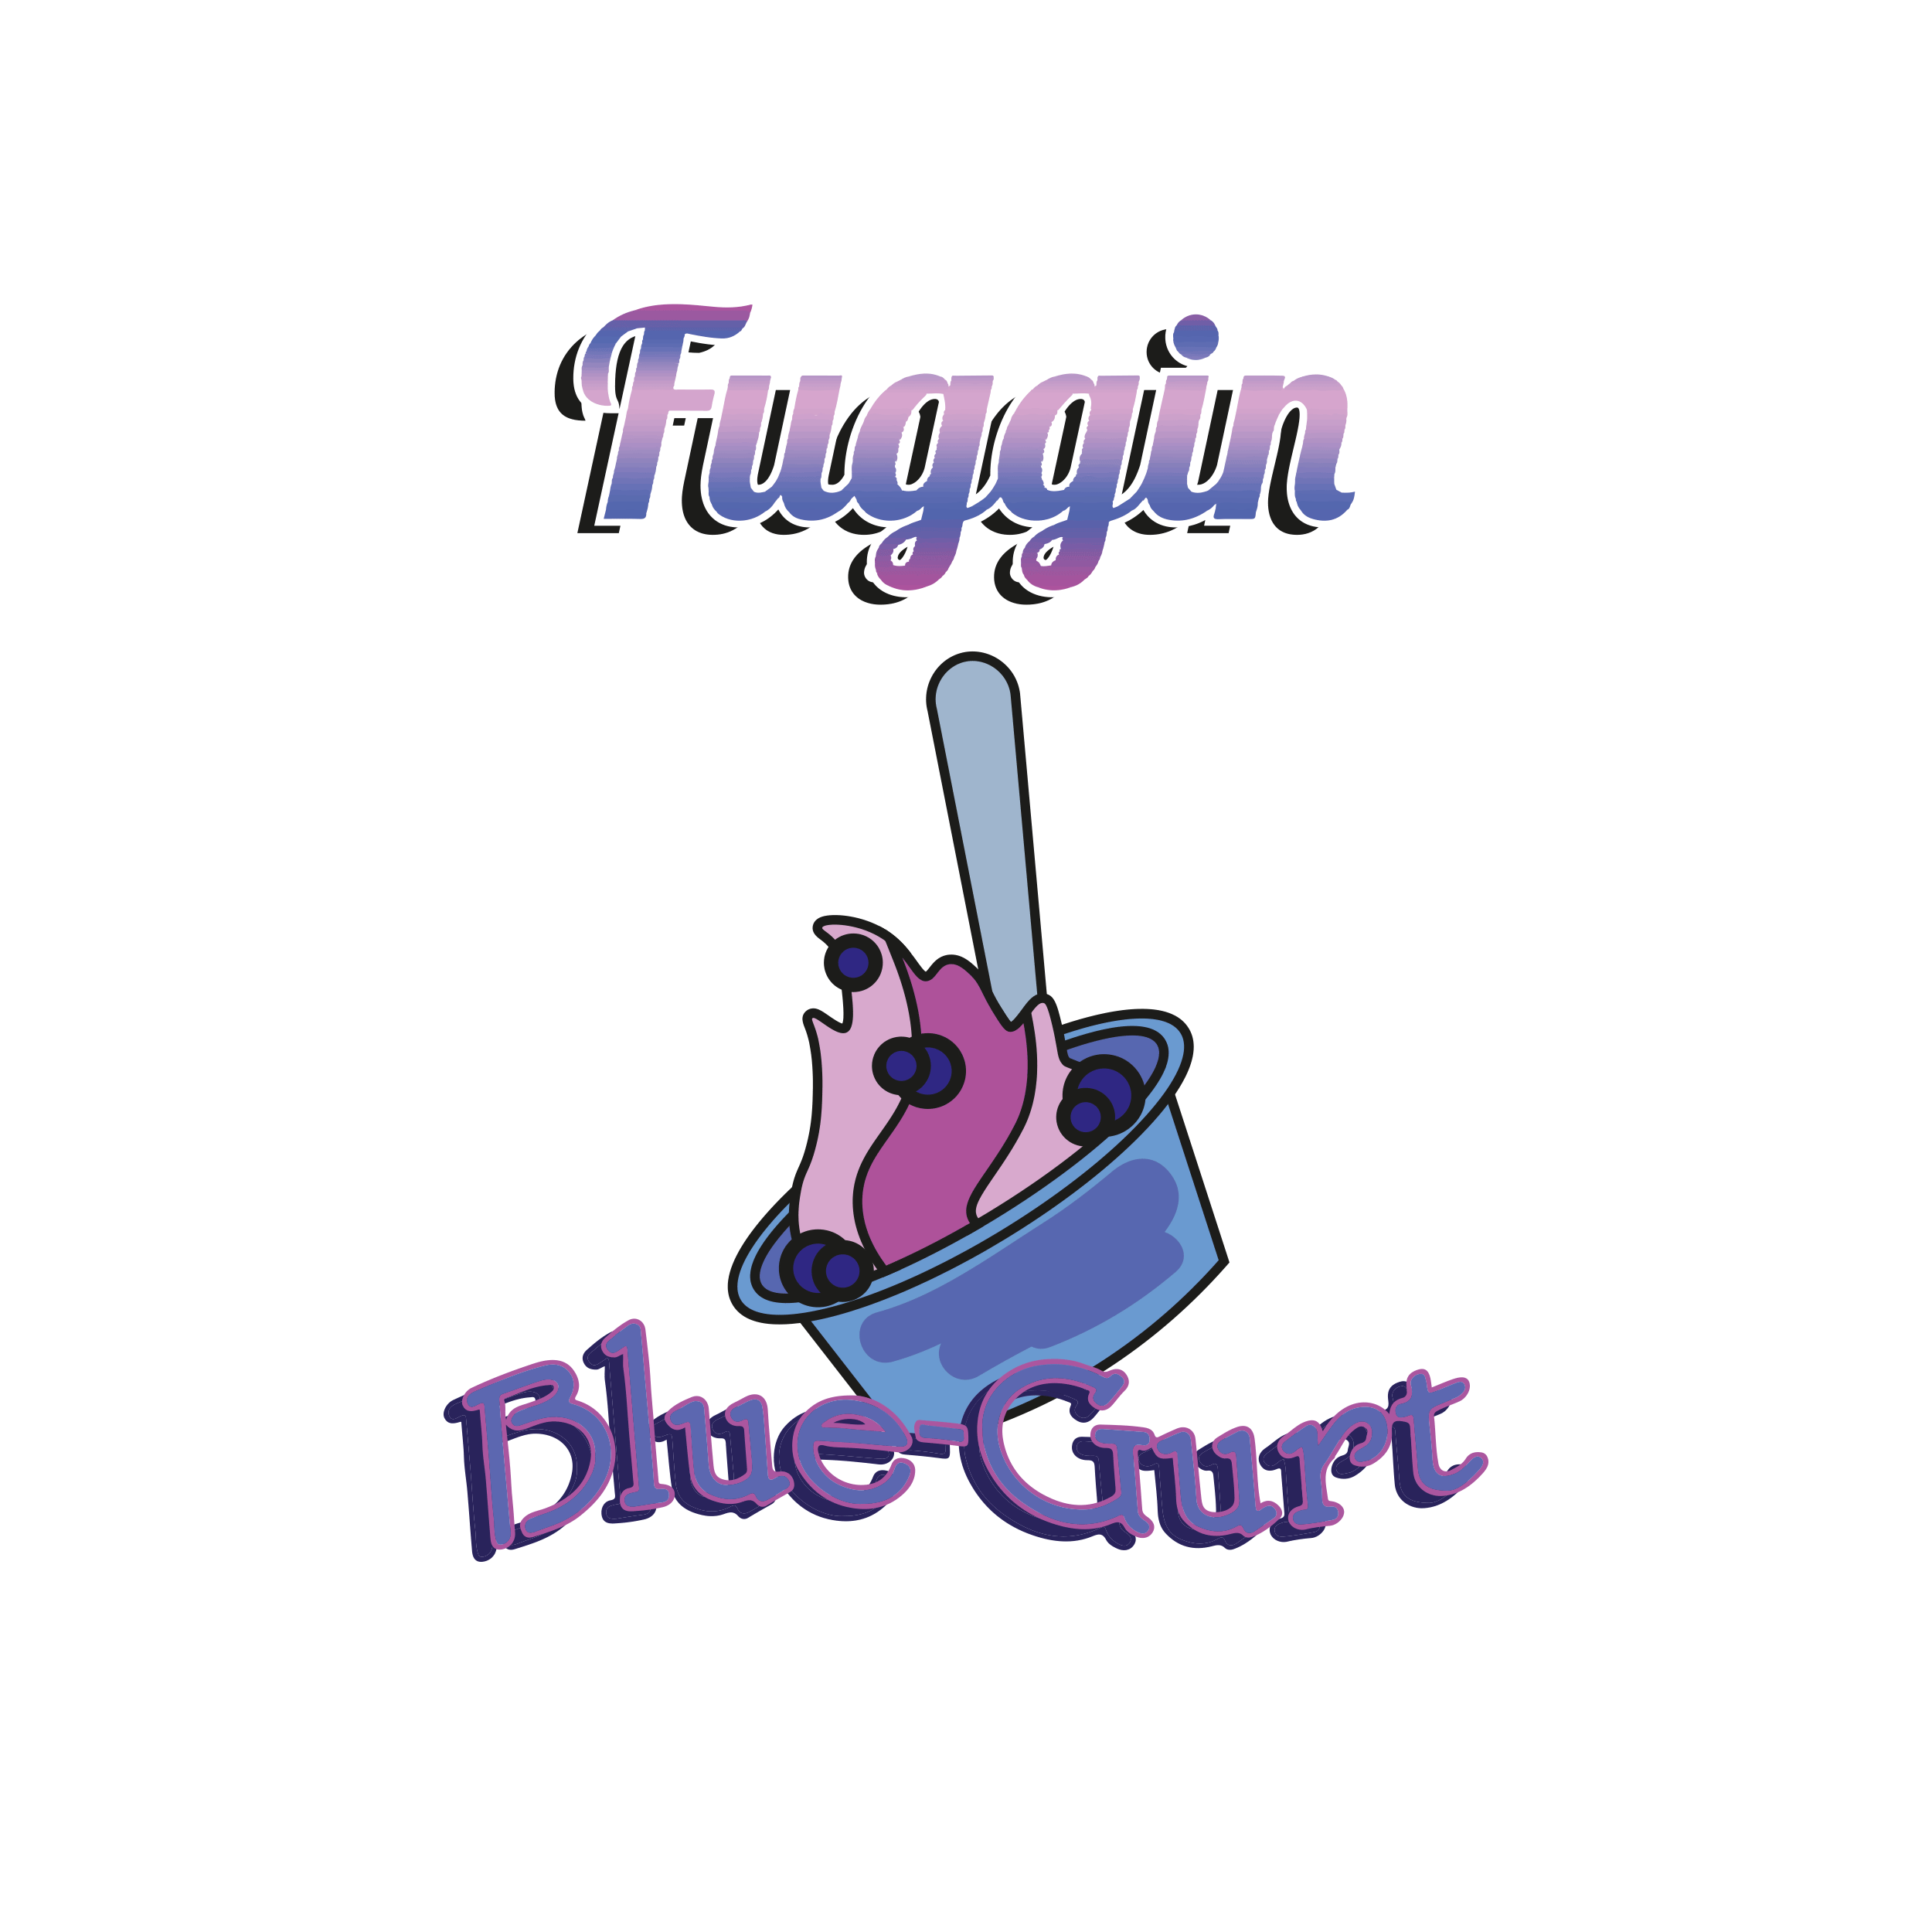 FUGGIN - BLUE-GHURT - (0MG/ML NICOTINE)